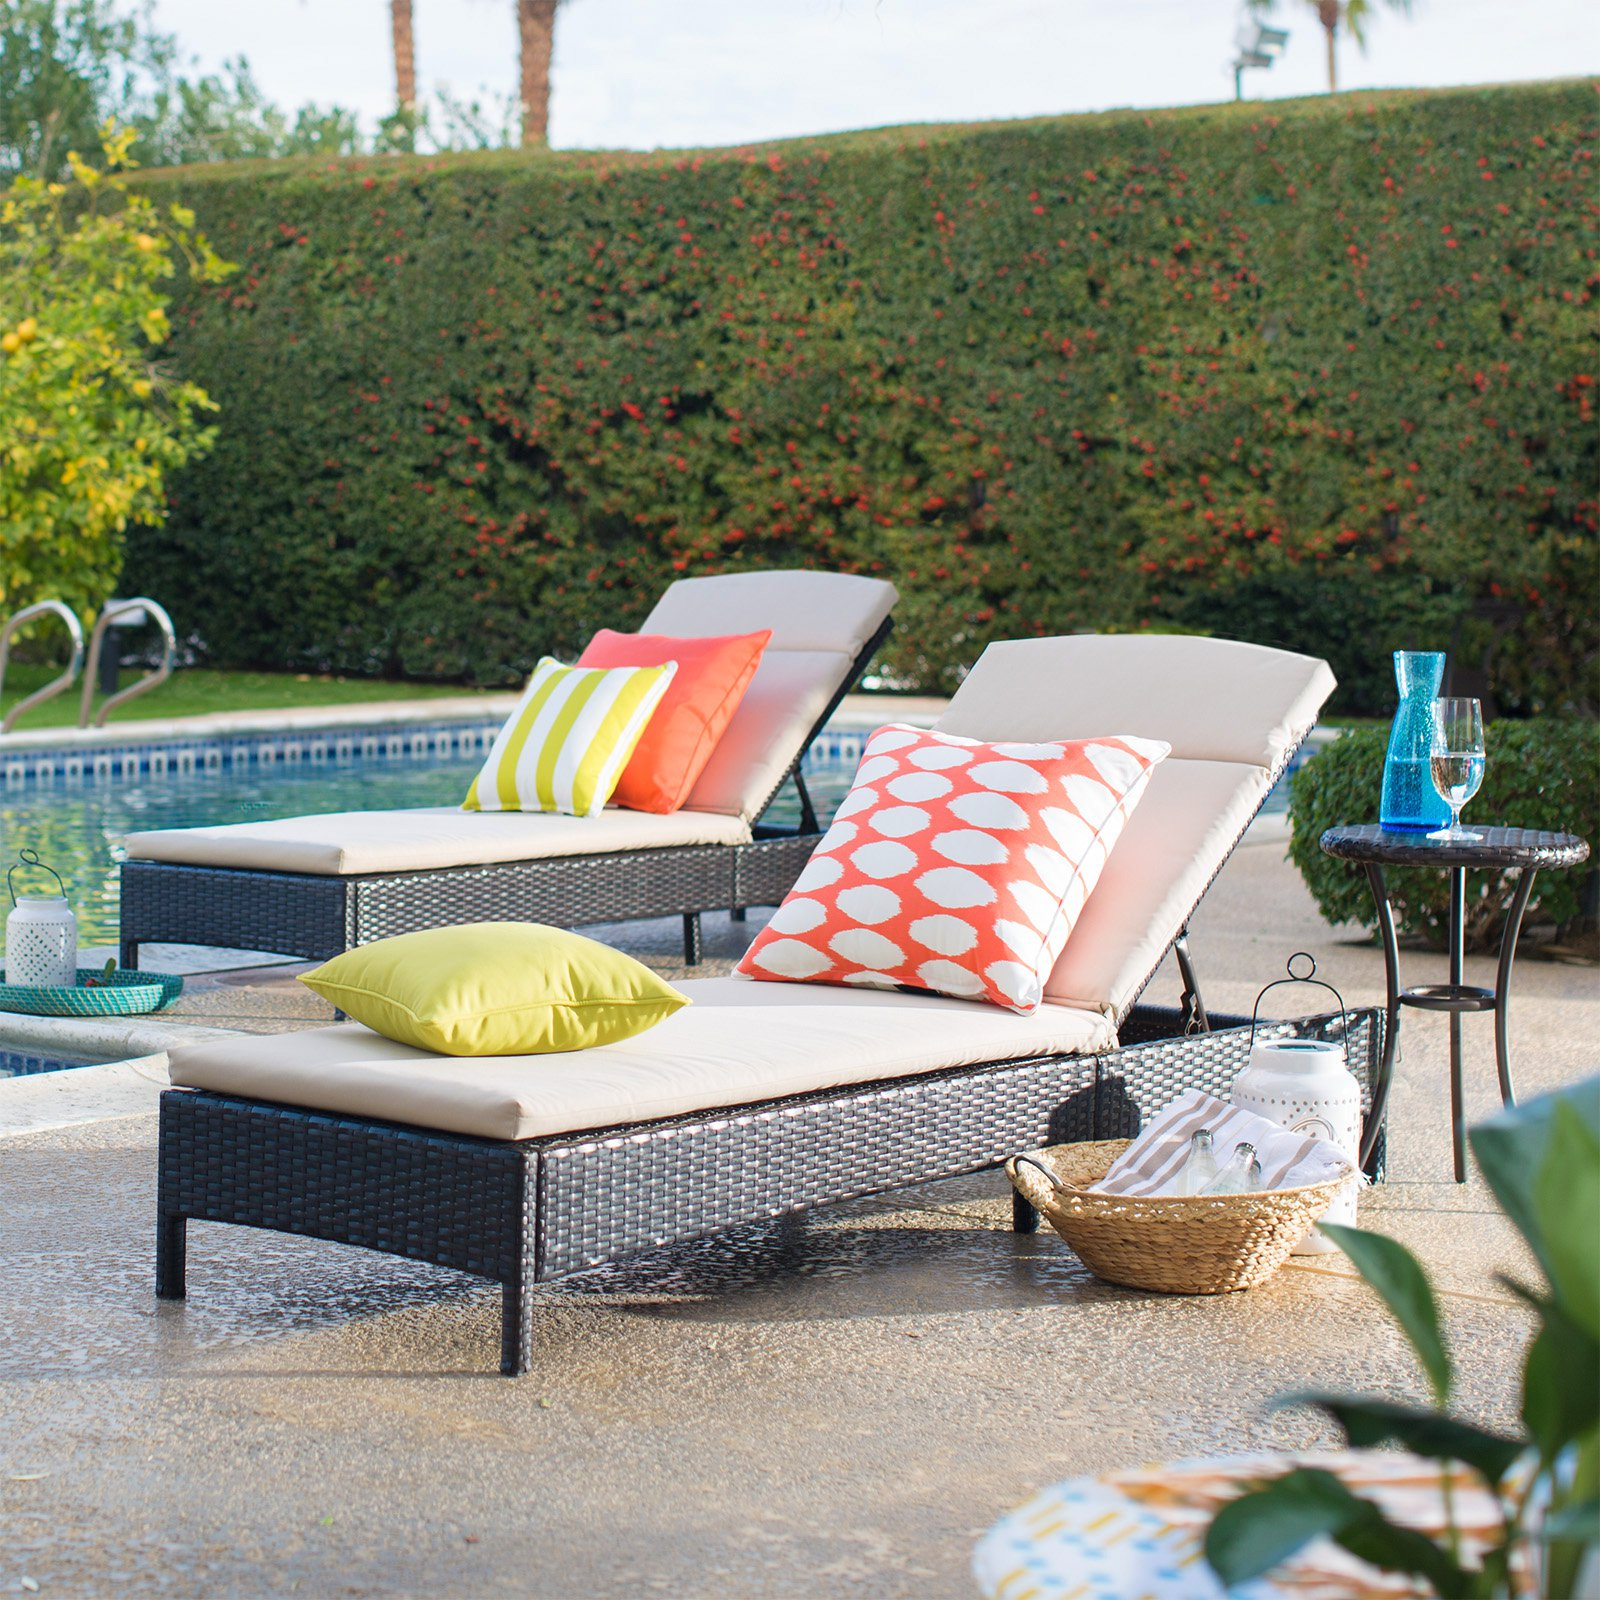 Preferred Coral Coast Berea All Weather Wicker Chaise Lounges With Side Table – 3  Piece Set Regarding Outdoor 3 Piece Wicker Chaise Lounges And Table Sets (View 21 of 25)